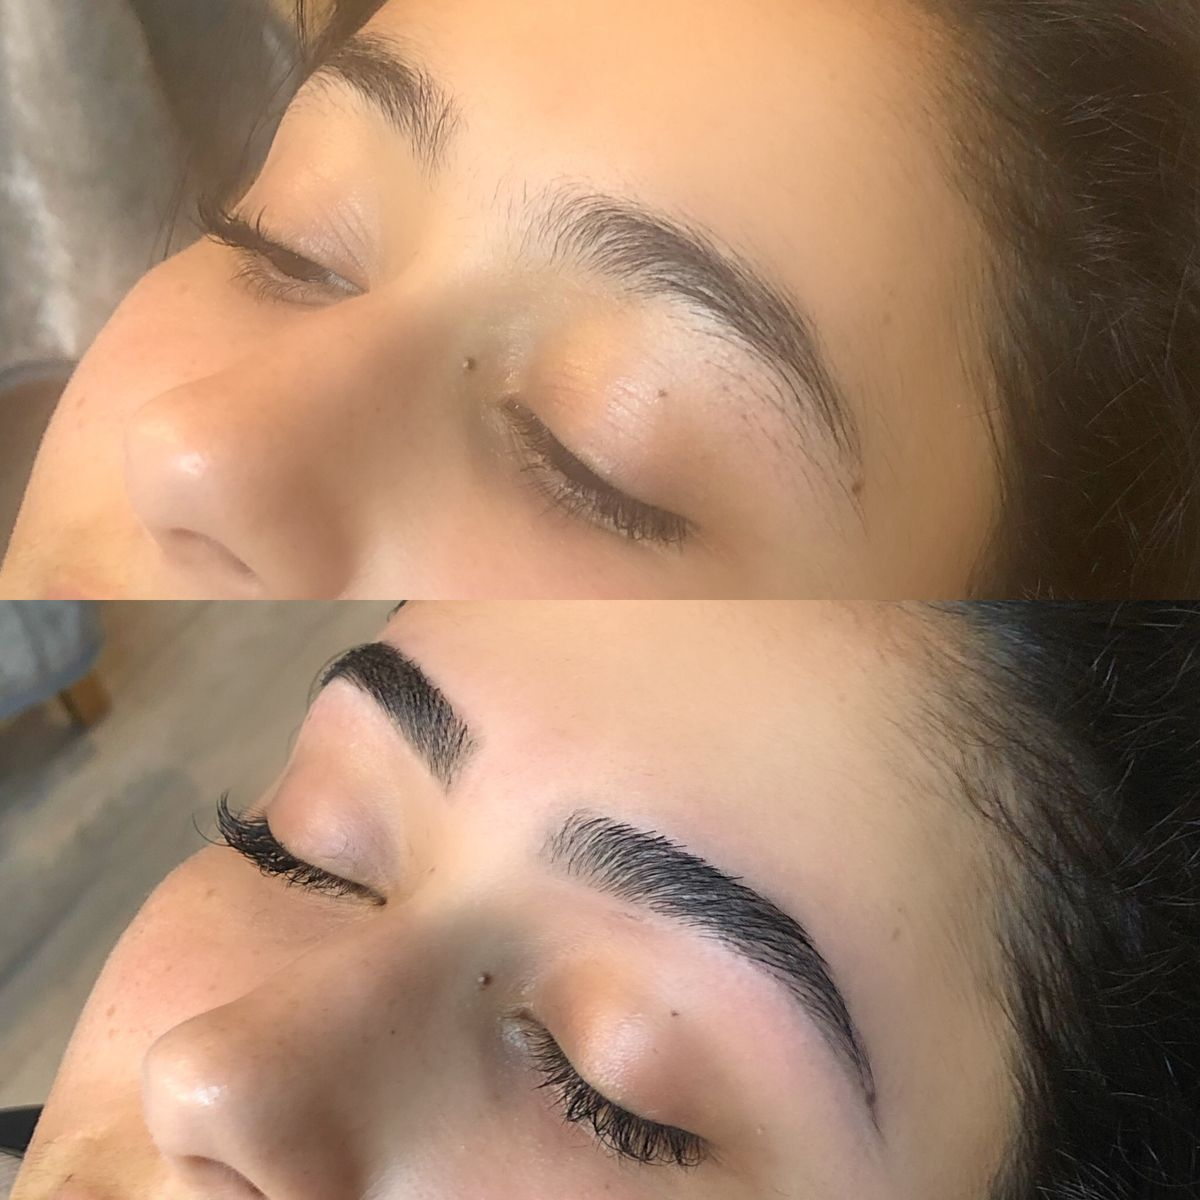 Pin by Kayla on Hair change Eyebrow tinting, Henna brows